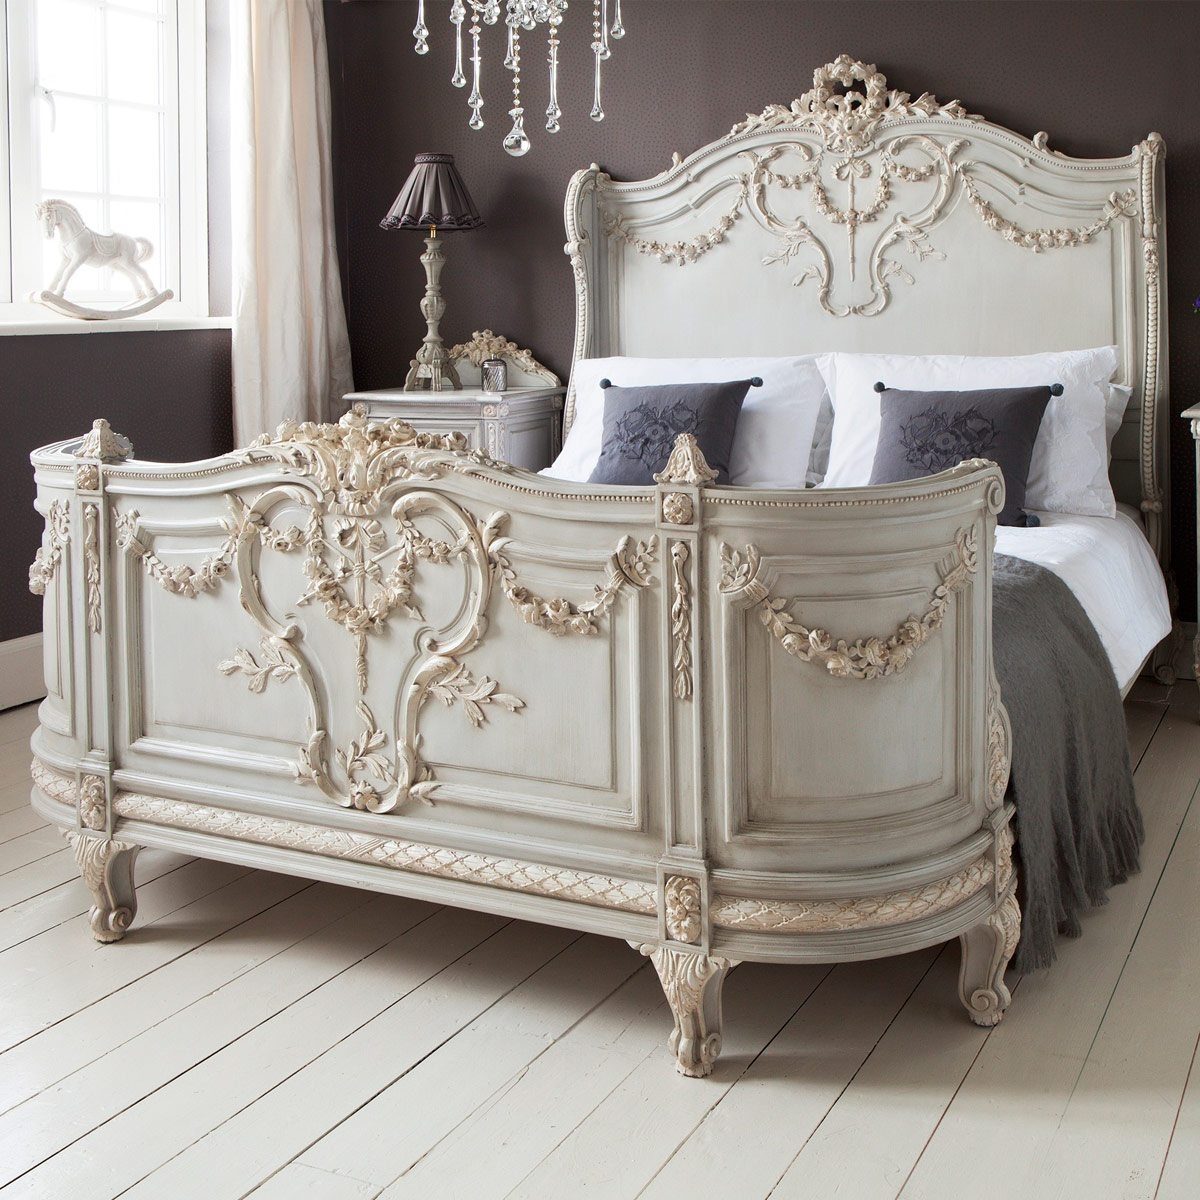 bonaparte french bed, french bedroom company